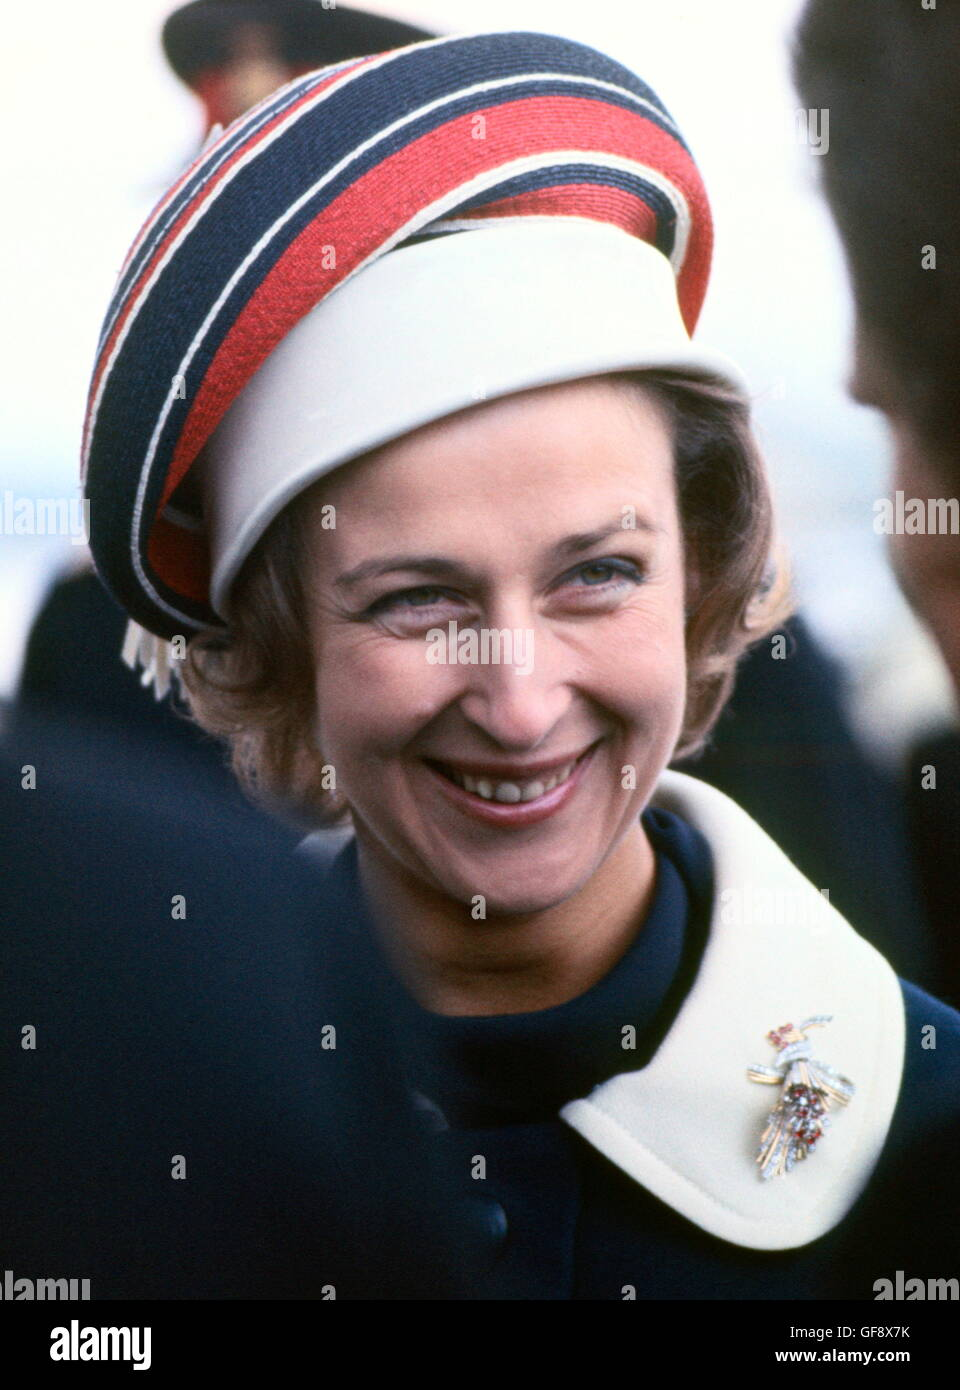 AJAXNETPHOTO. Avril 27th, 1970. GOSPORT, ENGLAND. - PRINCESS YACHT NOMS - S.A.R. la Princesse Alexandra, L'honorable Photo Stock